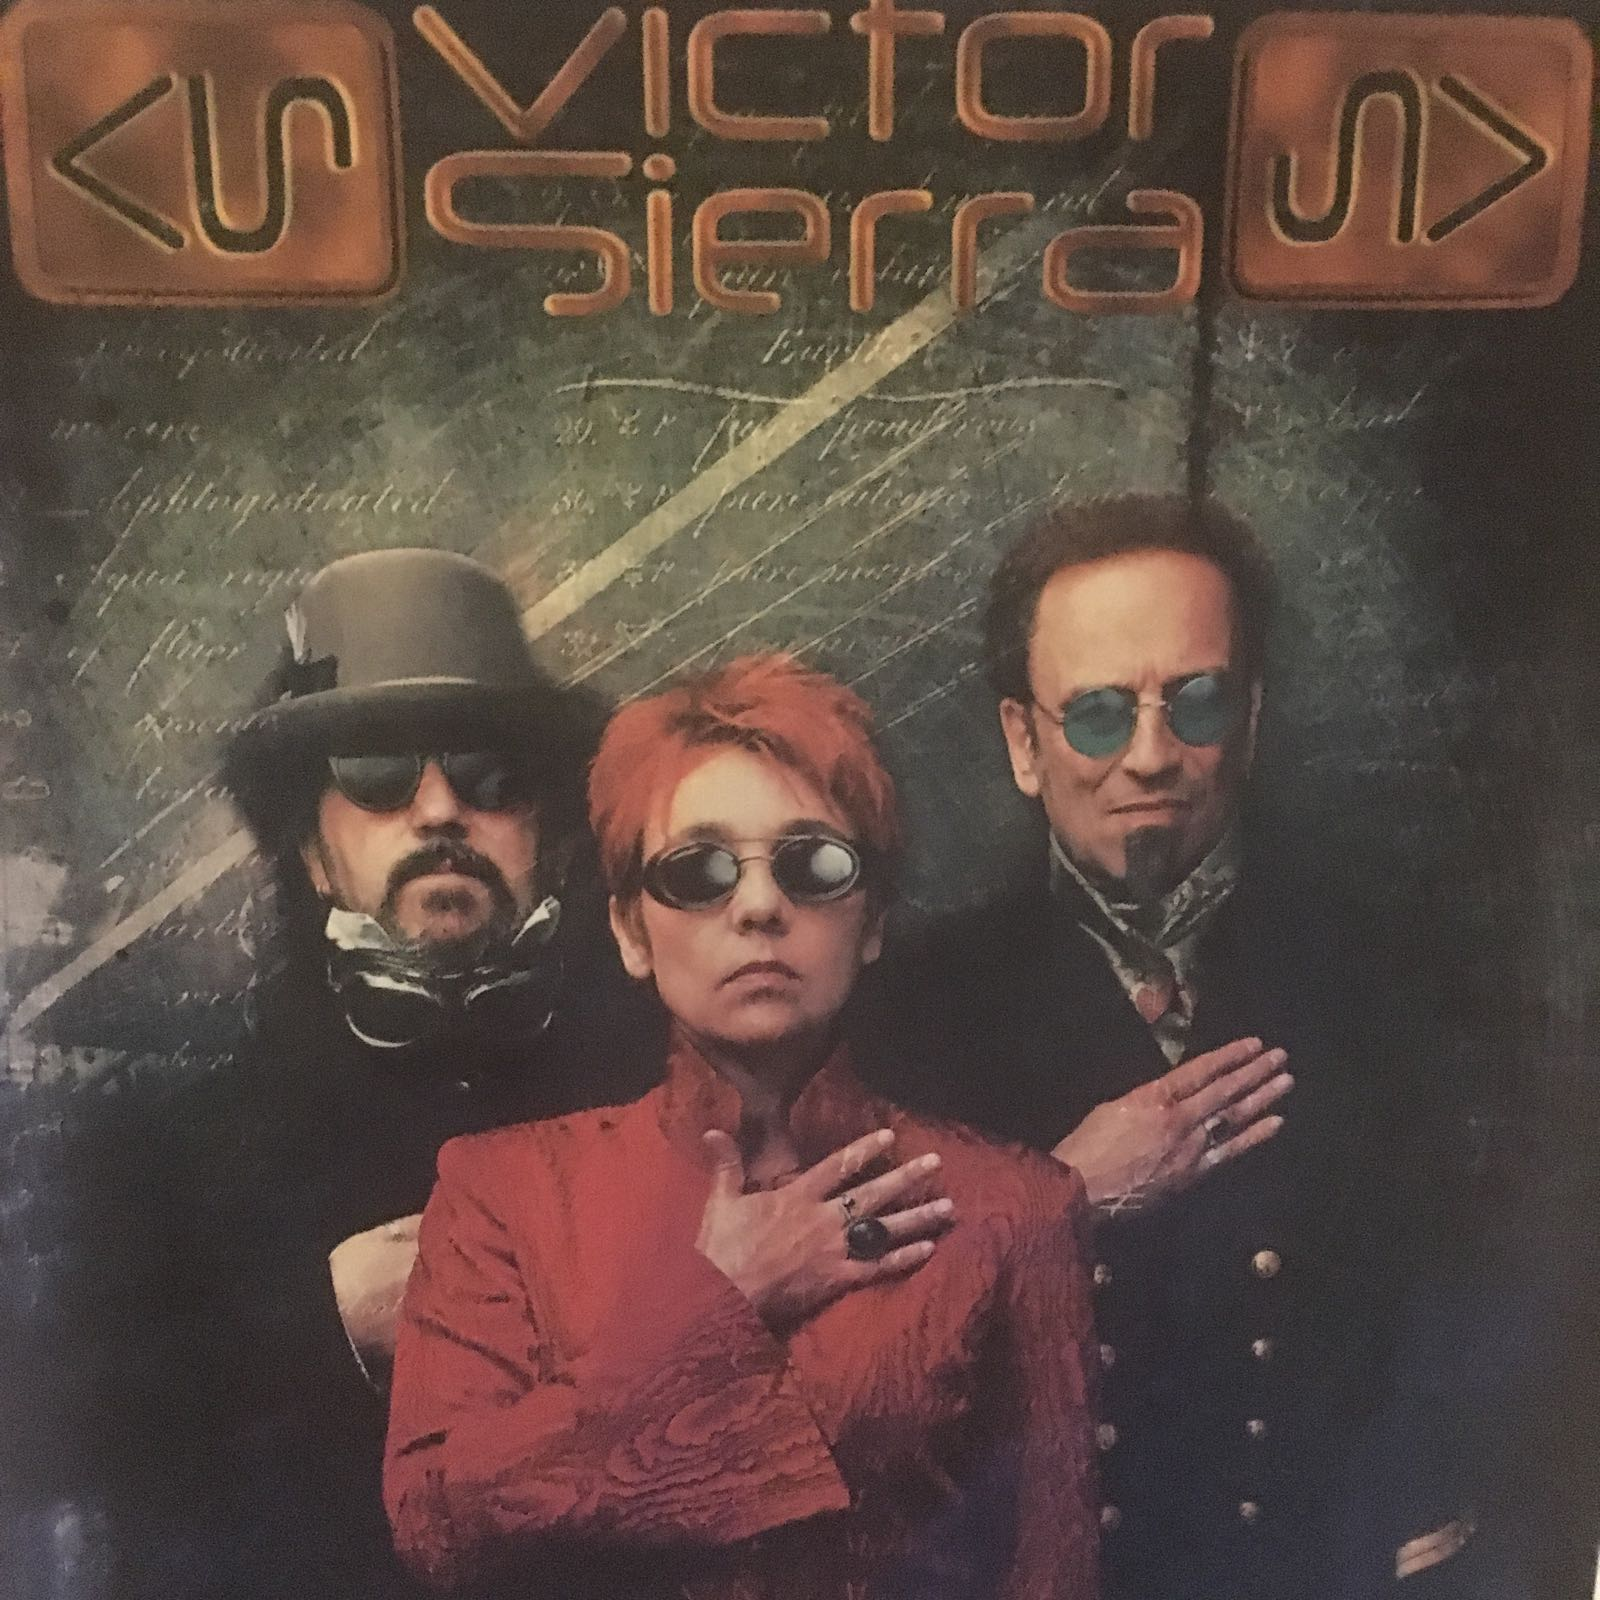 CD - Victor Sierra, 4 albums available